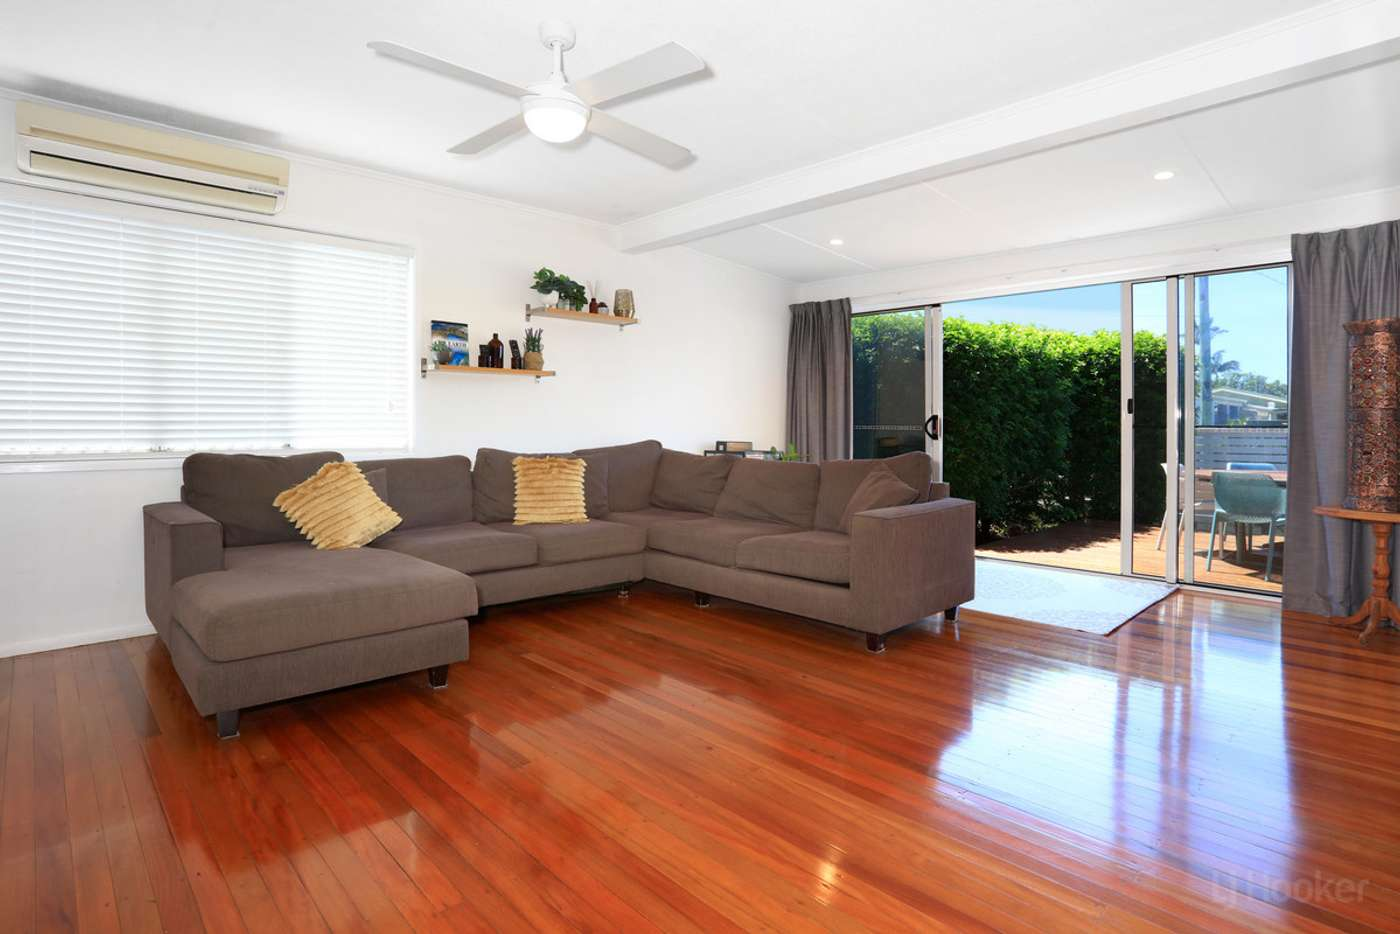 Main view of Homely house listing, 8 Collier Avenue, Biggera Waters QLD 4216